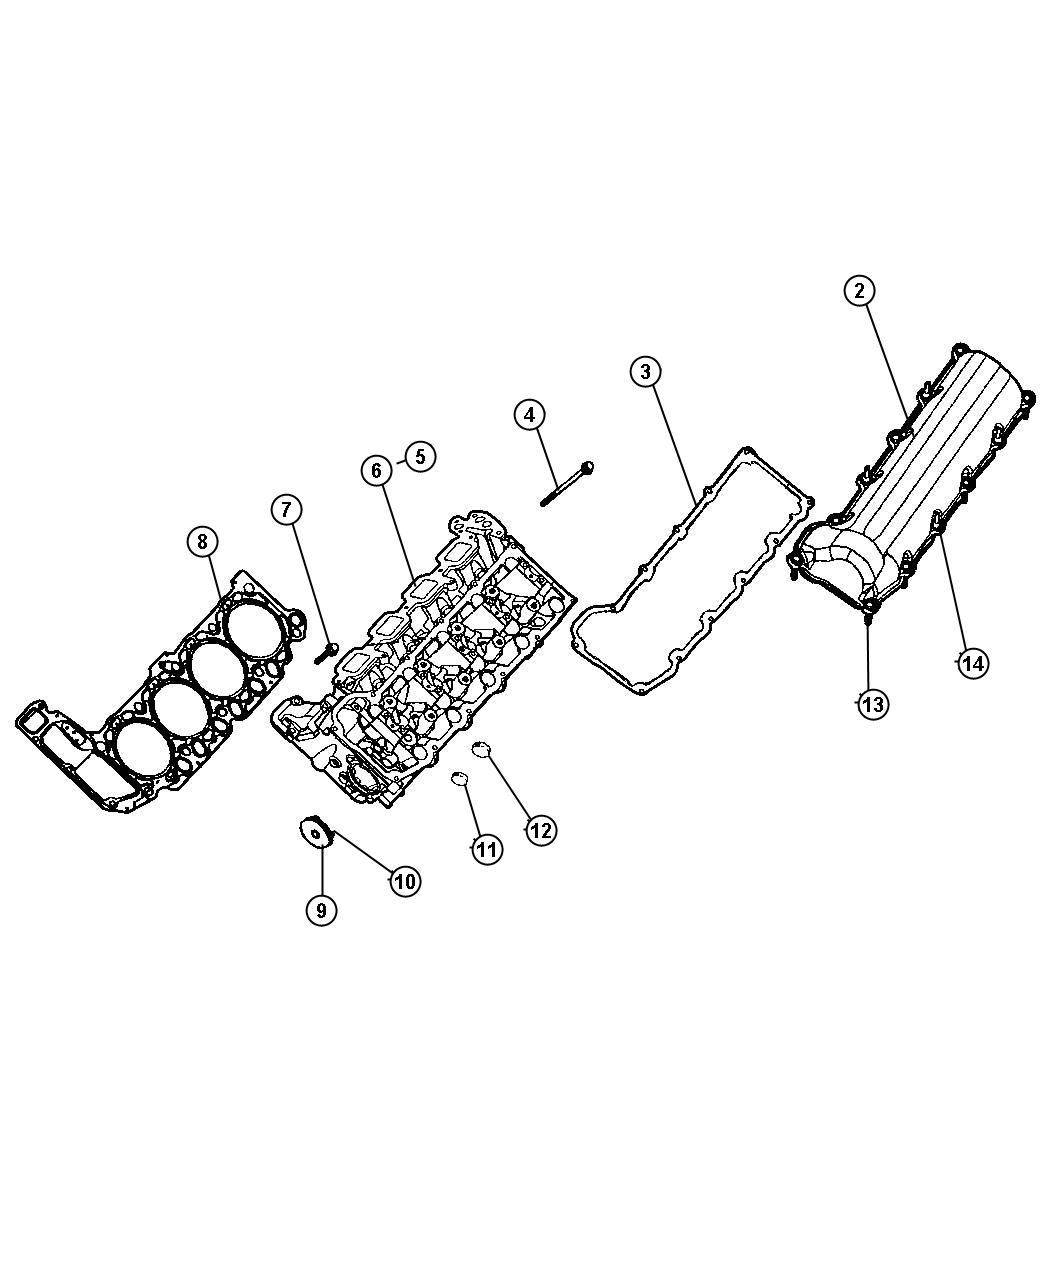 Cylinder Head, 4.7L, [Engine- 4.7L V8 MPI],[Engine - 4.7L V8 FFV]. Diagram